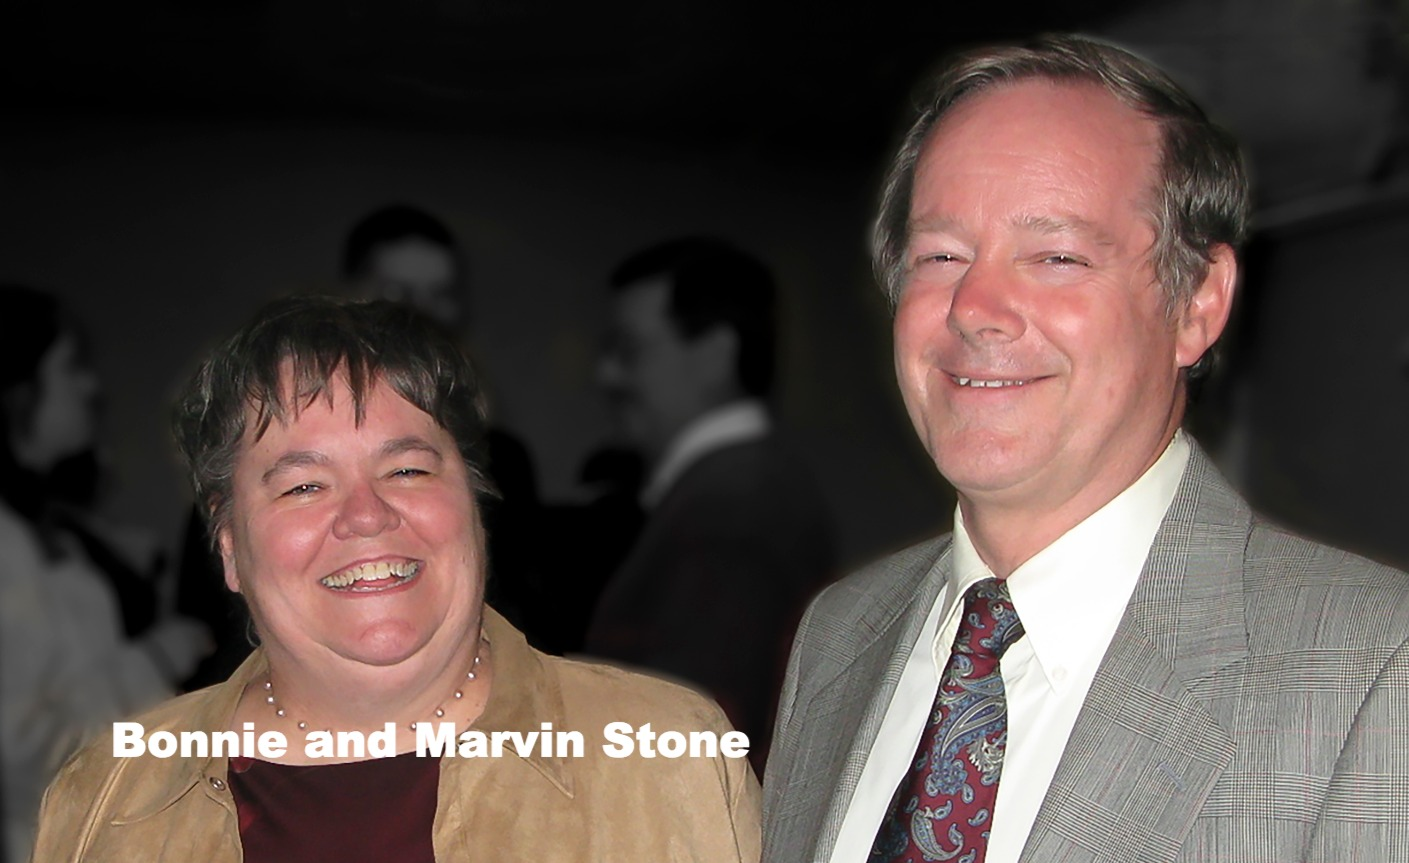 Bonnie and Marvin Stone 20070414-41017[2